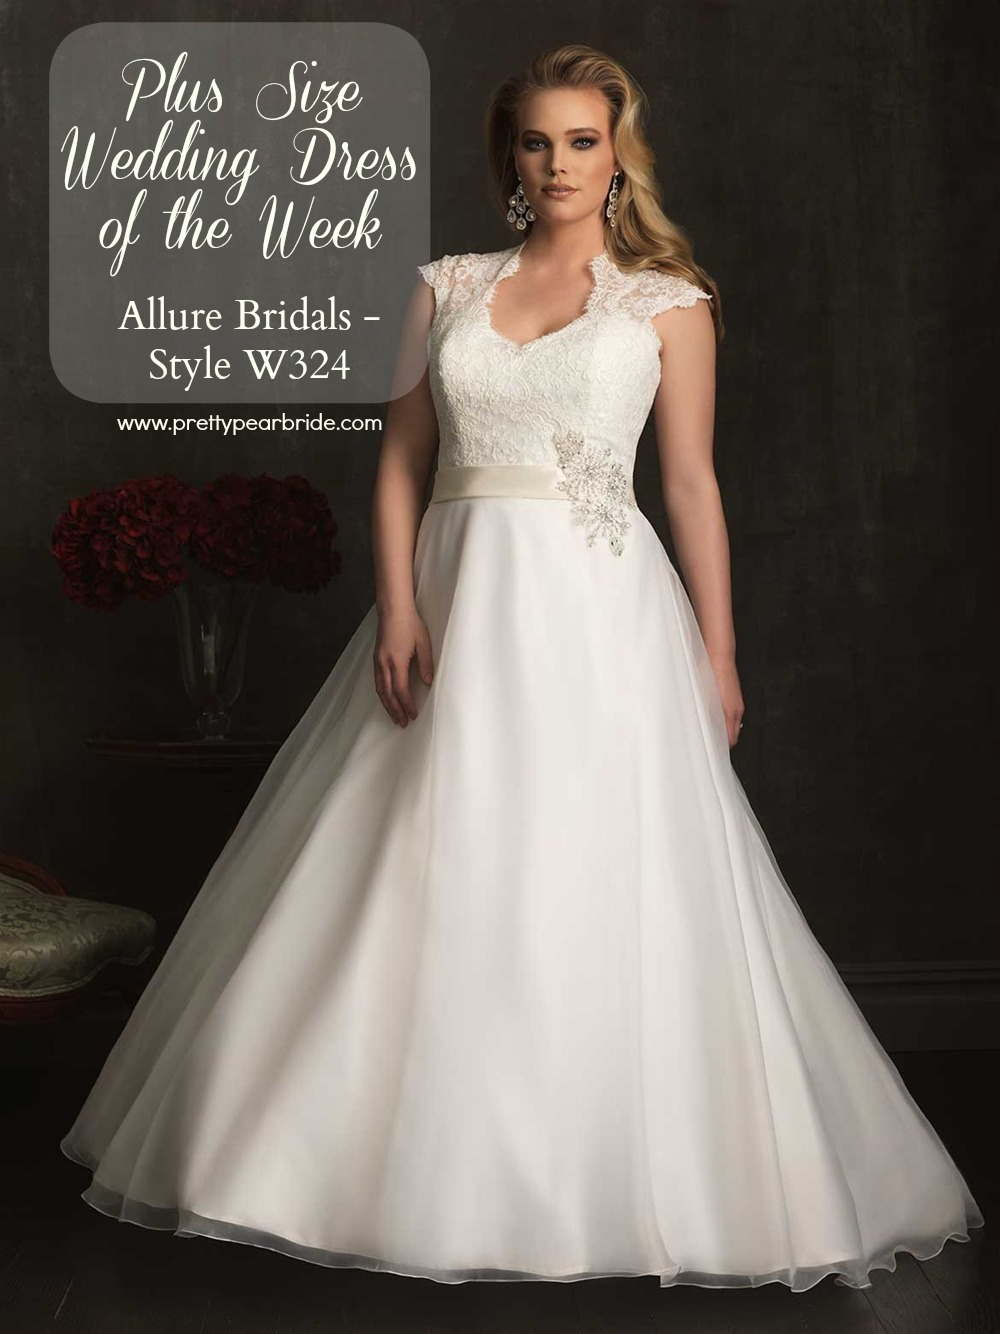 Plus Size Wedding Dress of the Week Allure Bridal  Style W324  The Pretty Pear Bride  Plus